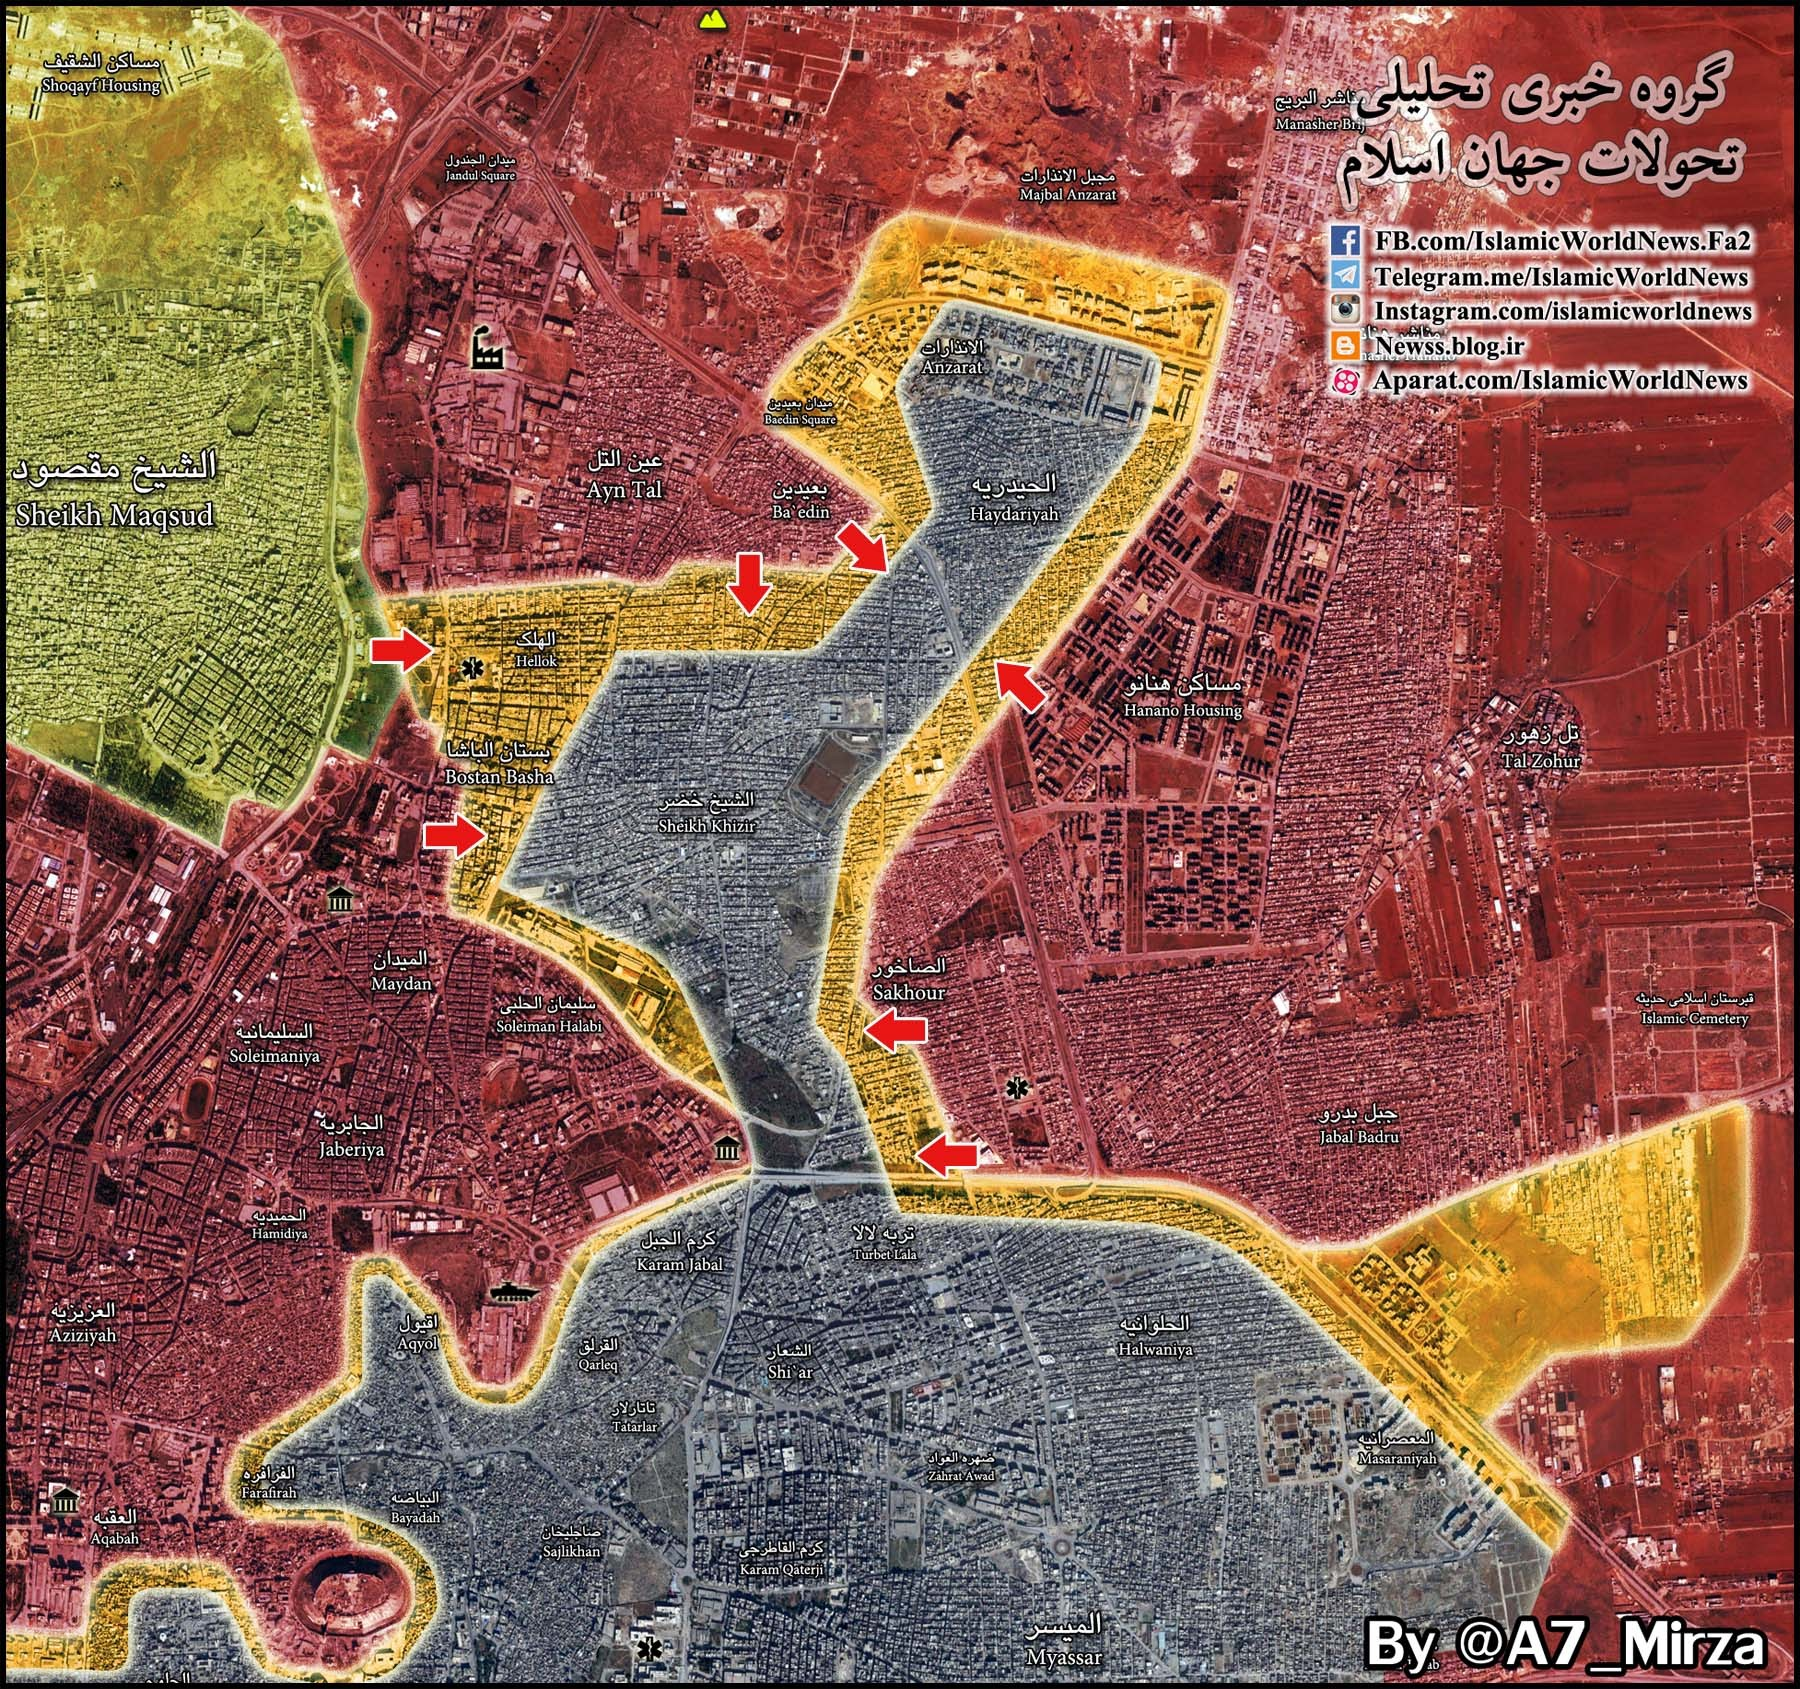 Syria Map Update: Military Situation in Aleppo City on November 27, 2016